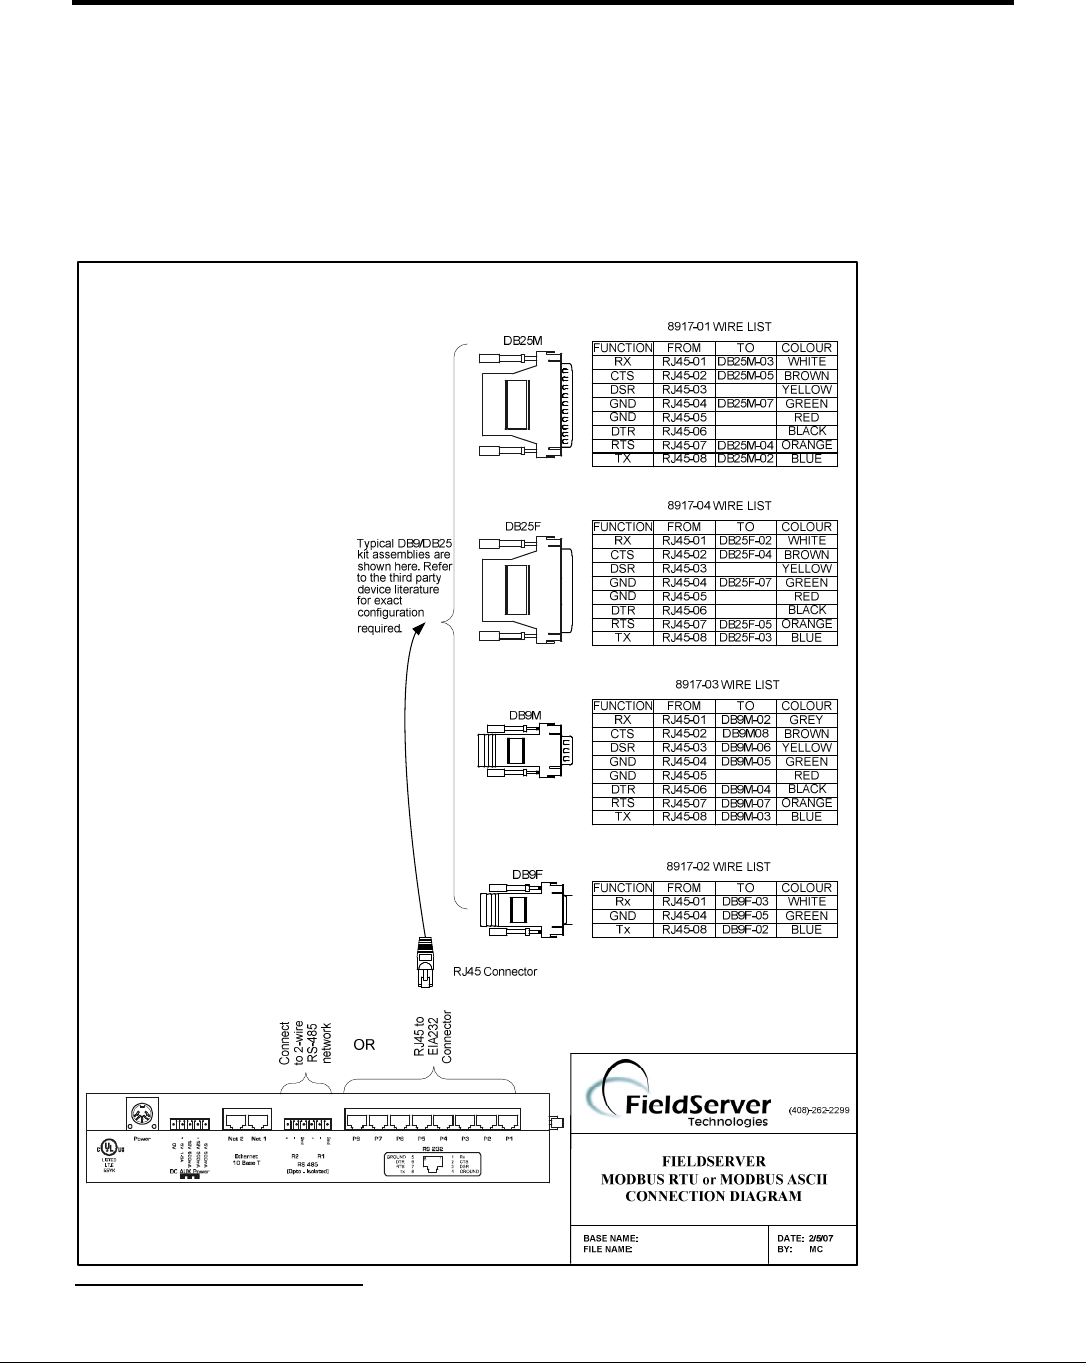 Fieldserver Fs 8700 01 Users Manual Modbus Rtu T28700 Wiring Diagram Driver Page 5 Of 21